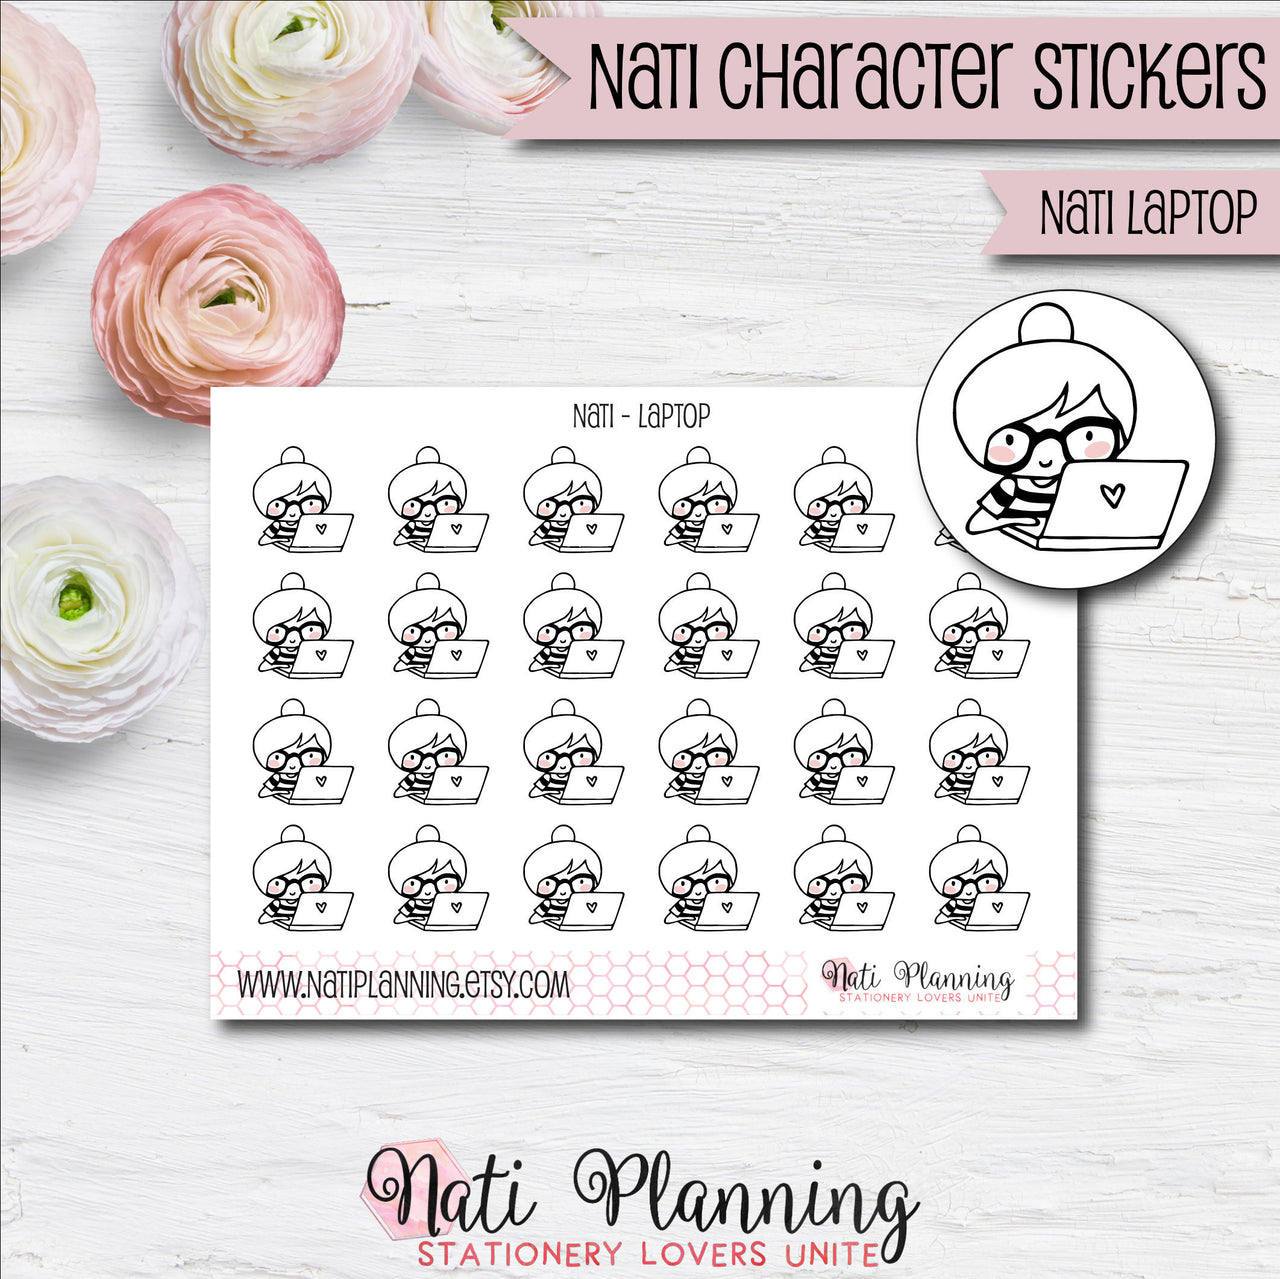 Nati - Laptop Stickers